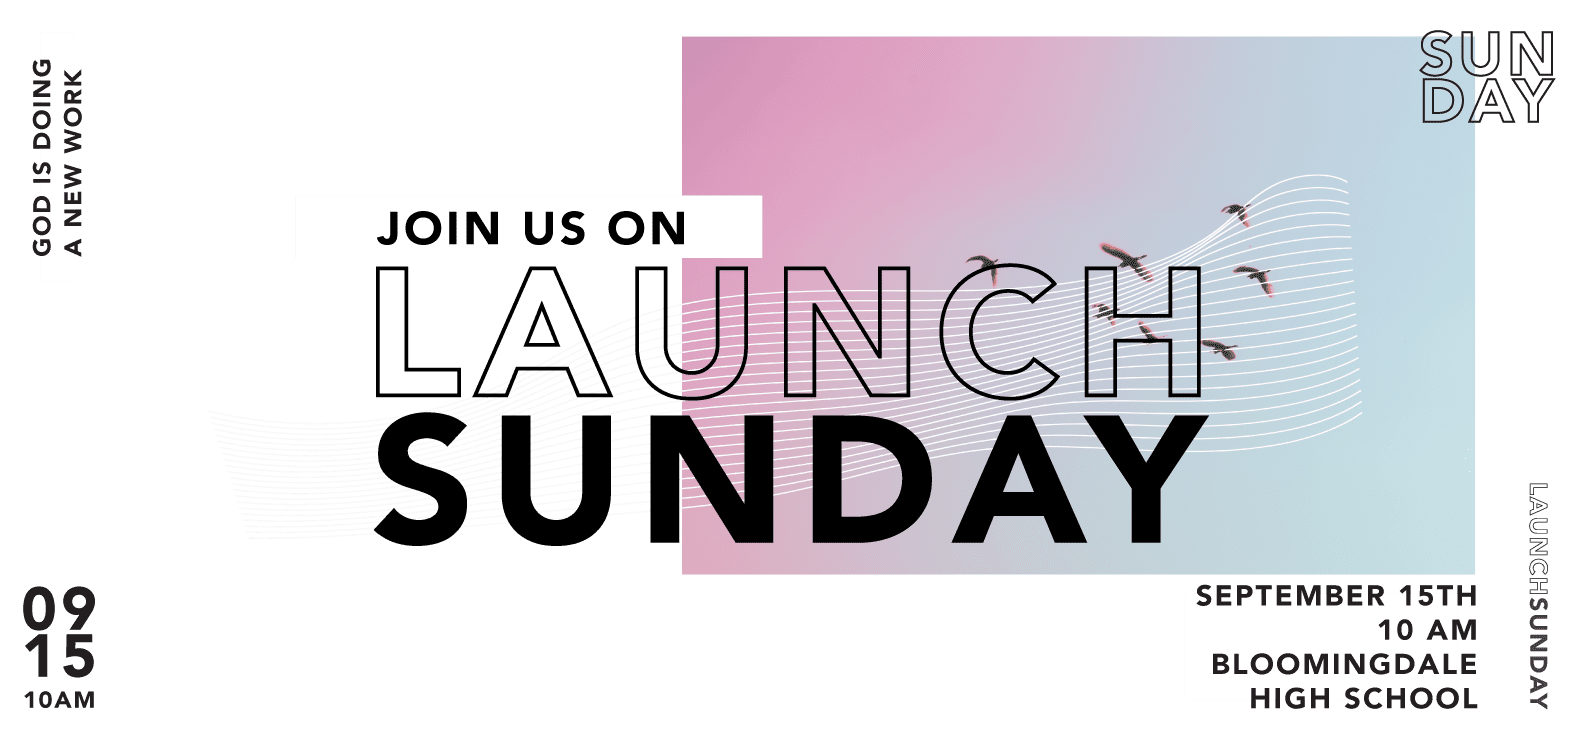 Join us on Launch Sunday – September 15, 10 a.m. at Bloomingdale High School